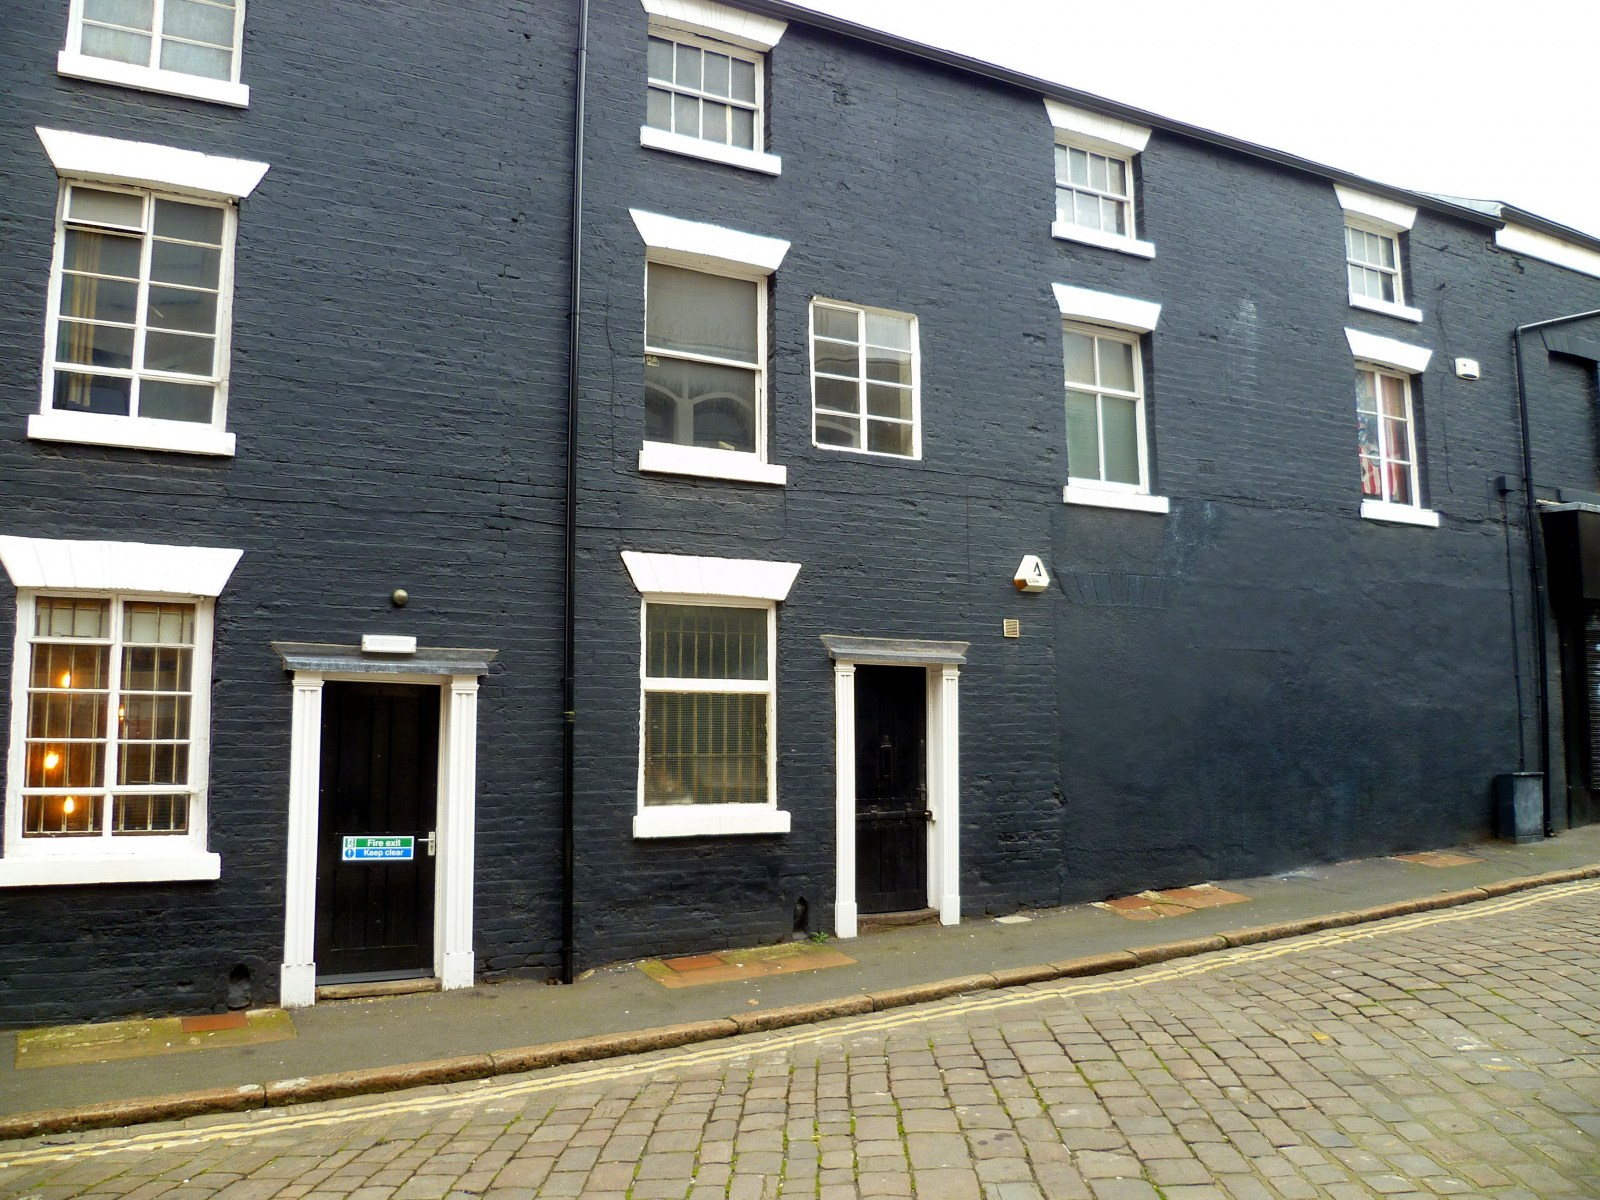 Blind backhouses on Canning Street built c 1830.jpg